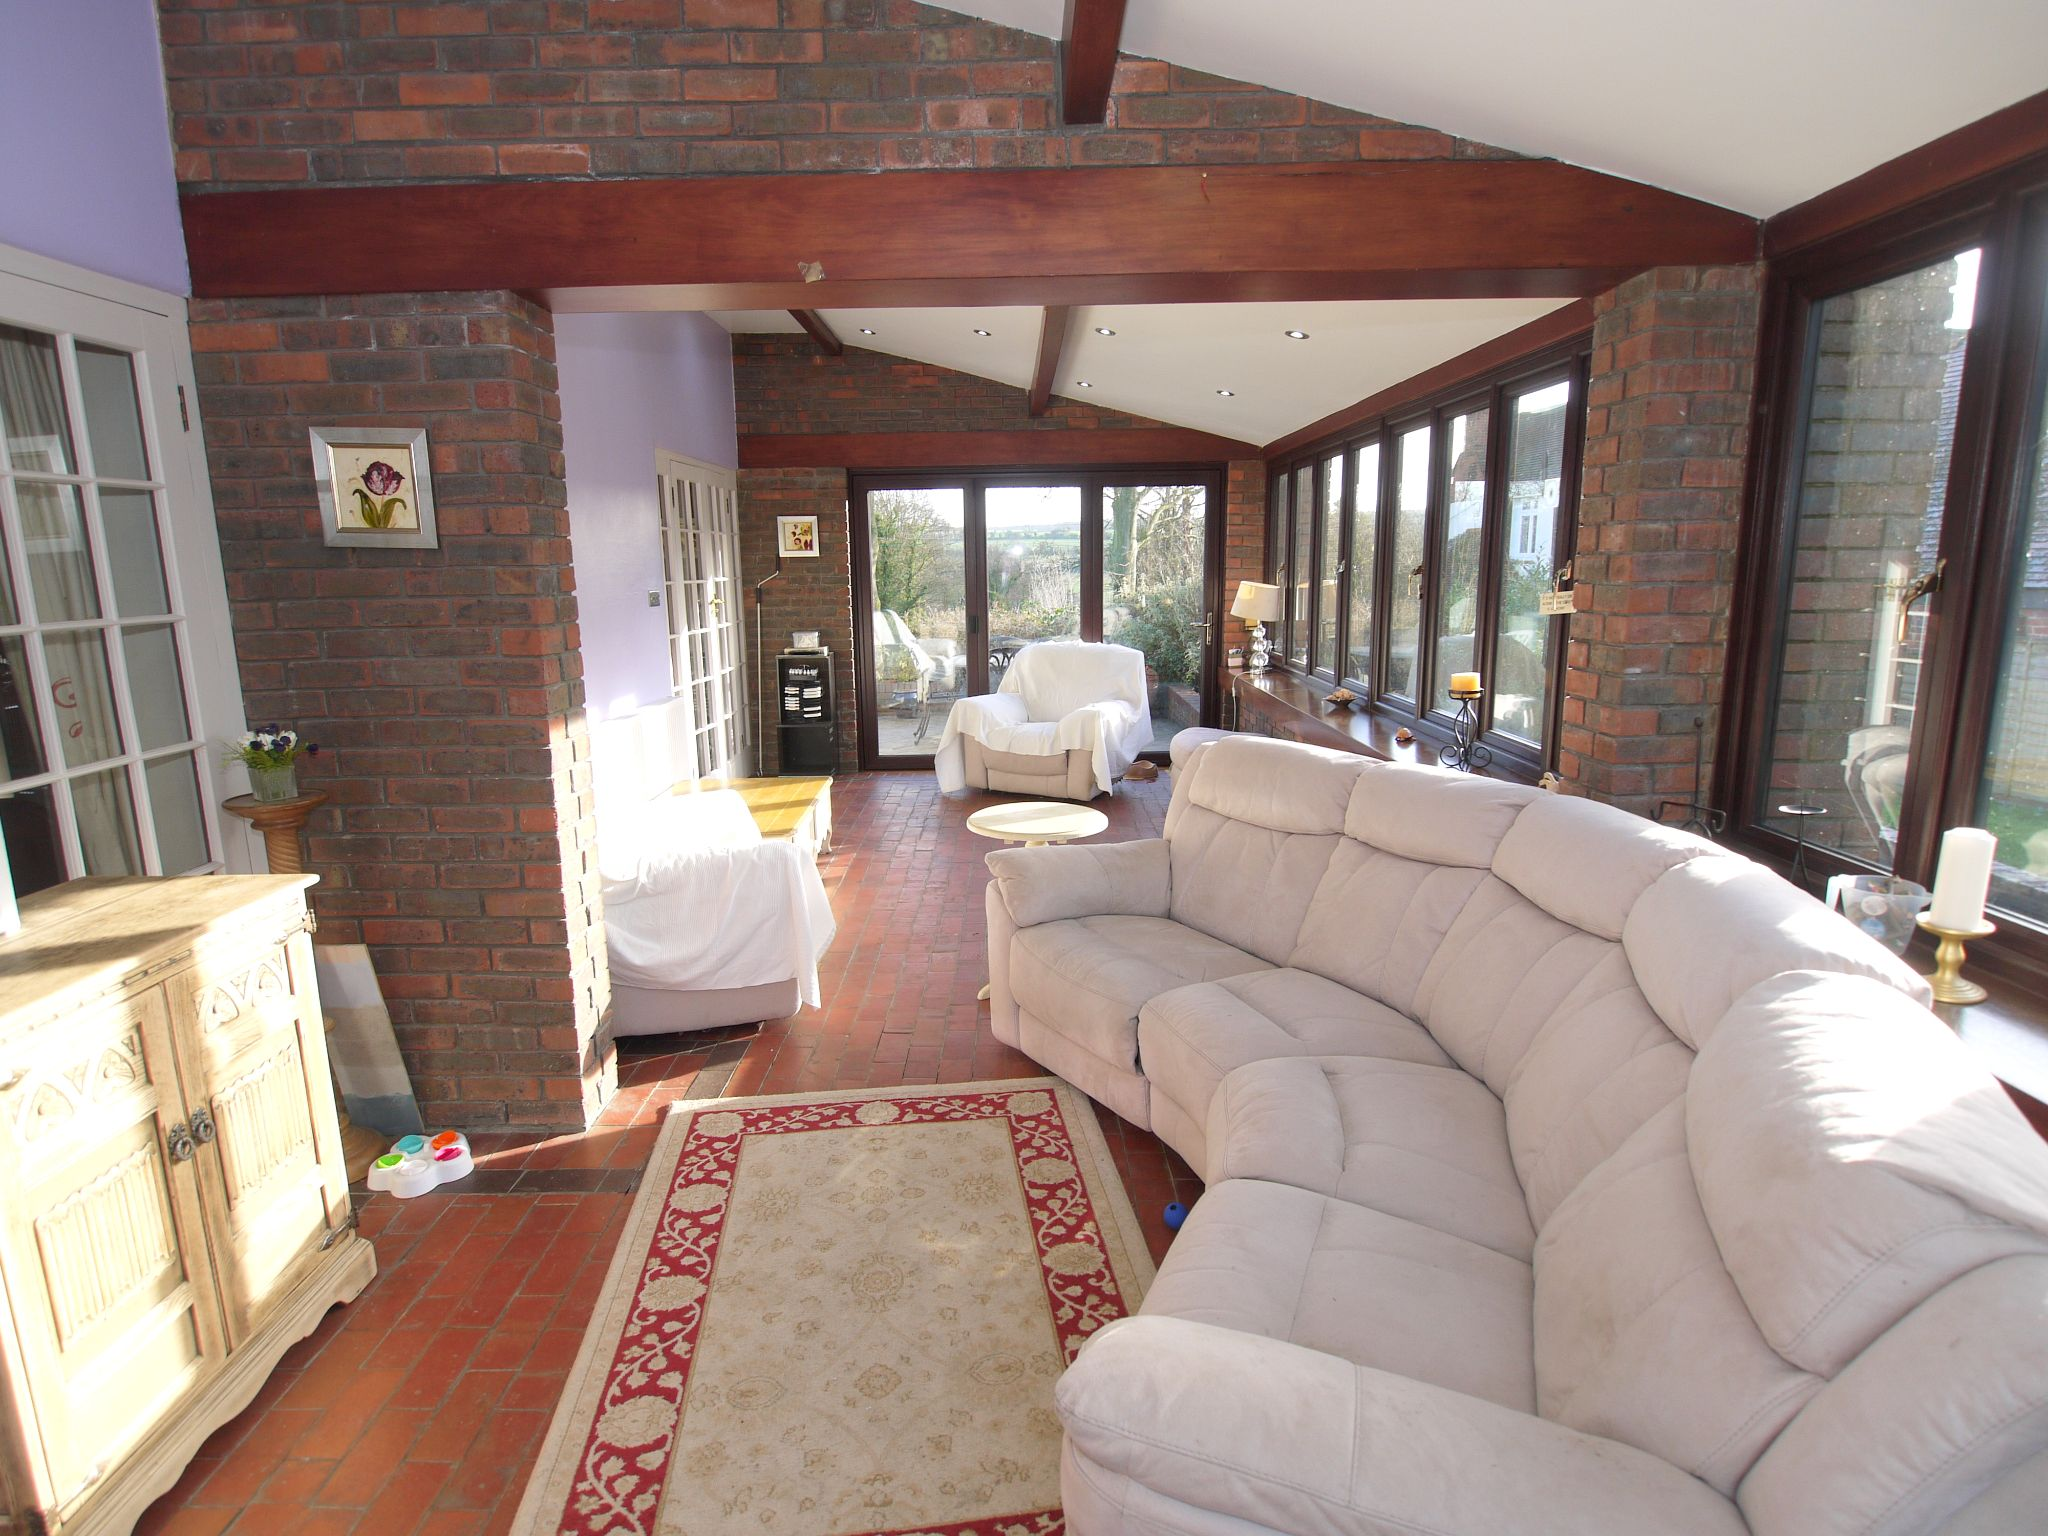 4 bedroom detached house For Sale in Farningham - Photograph 4